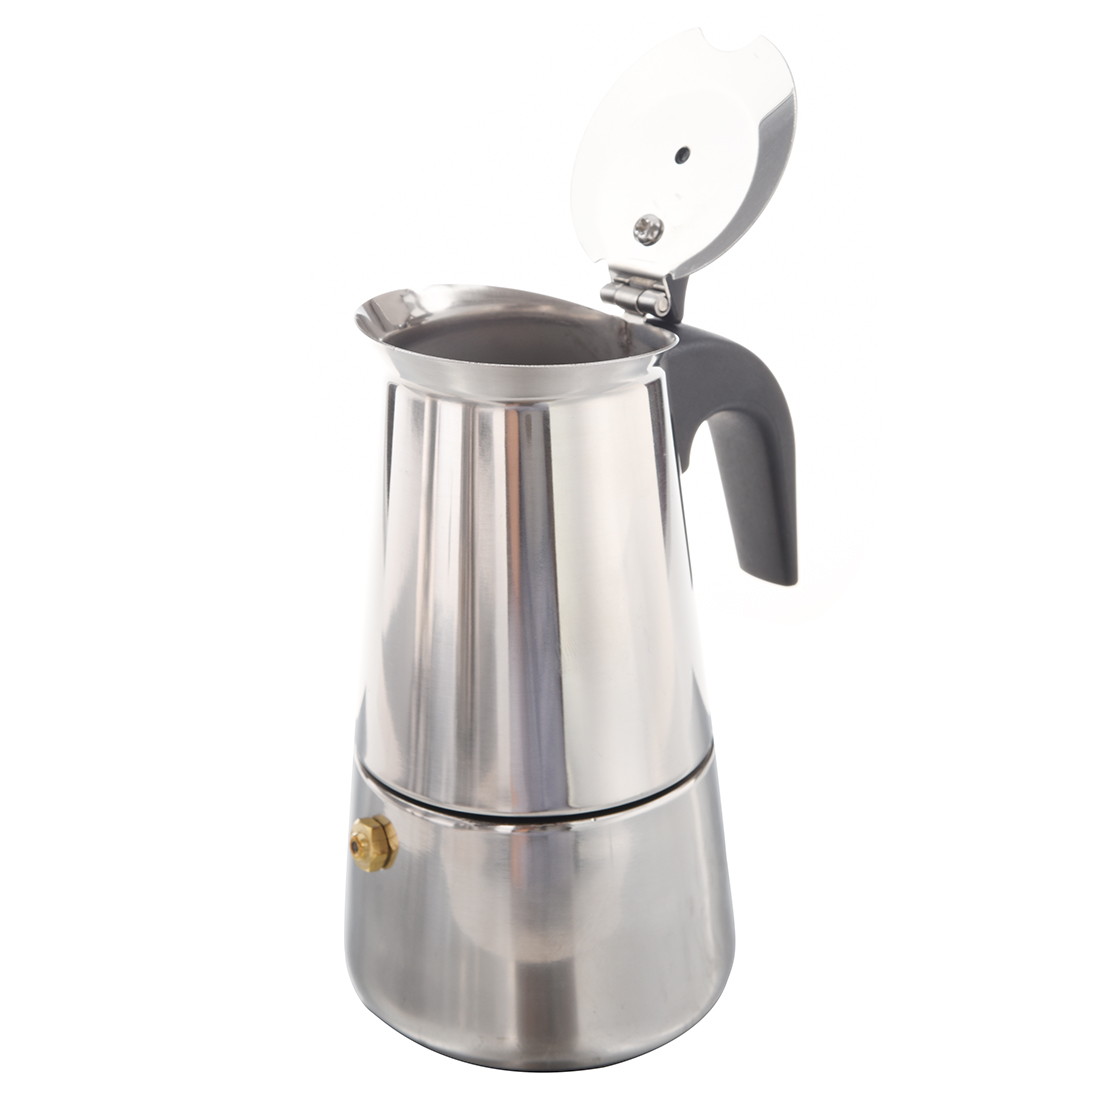 Coffee Maker With Percolator : 100ML Stainless Steel Coffee Maker Percolator Stove Top Pot WS eBay